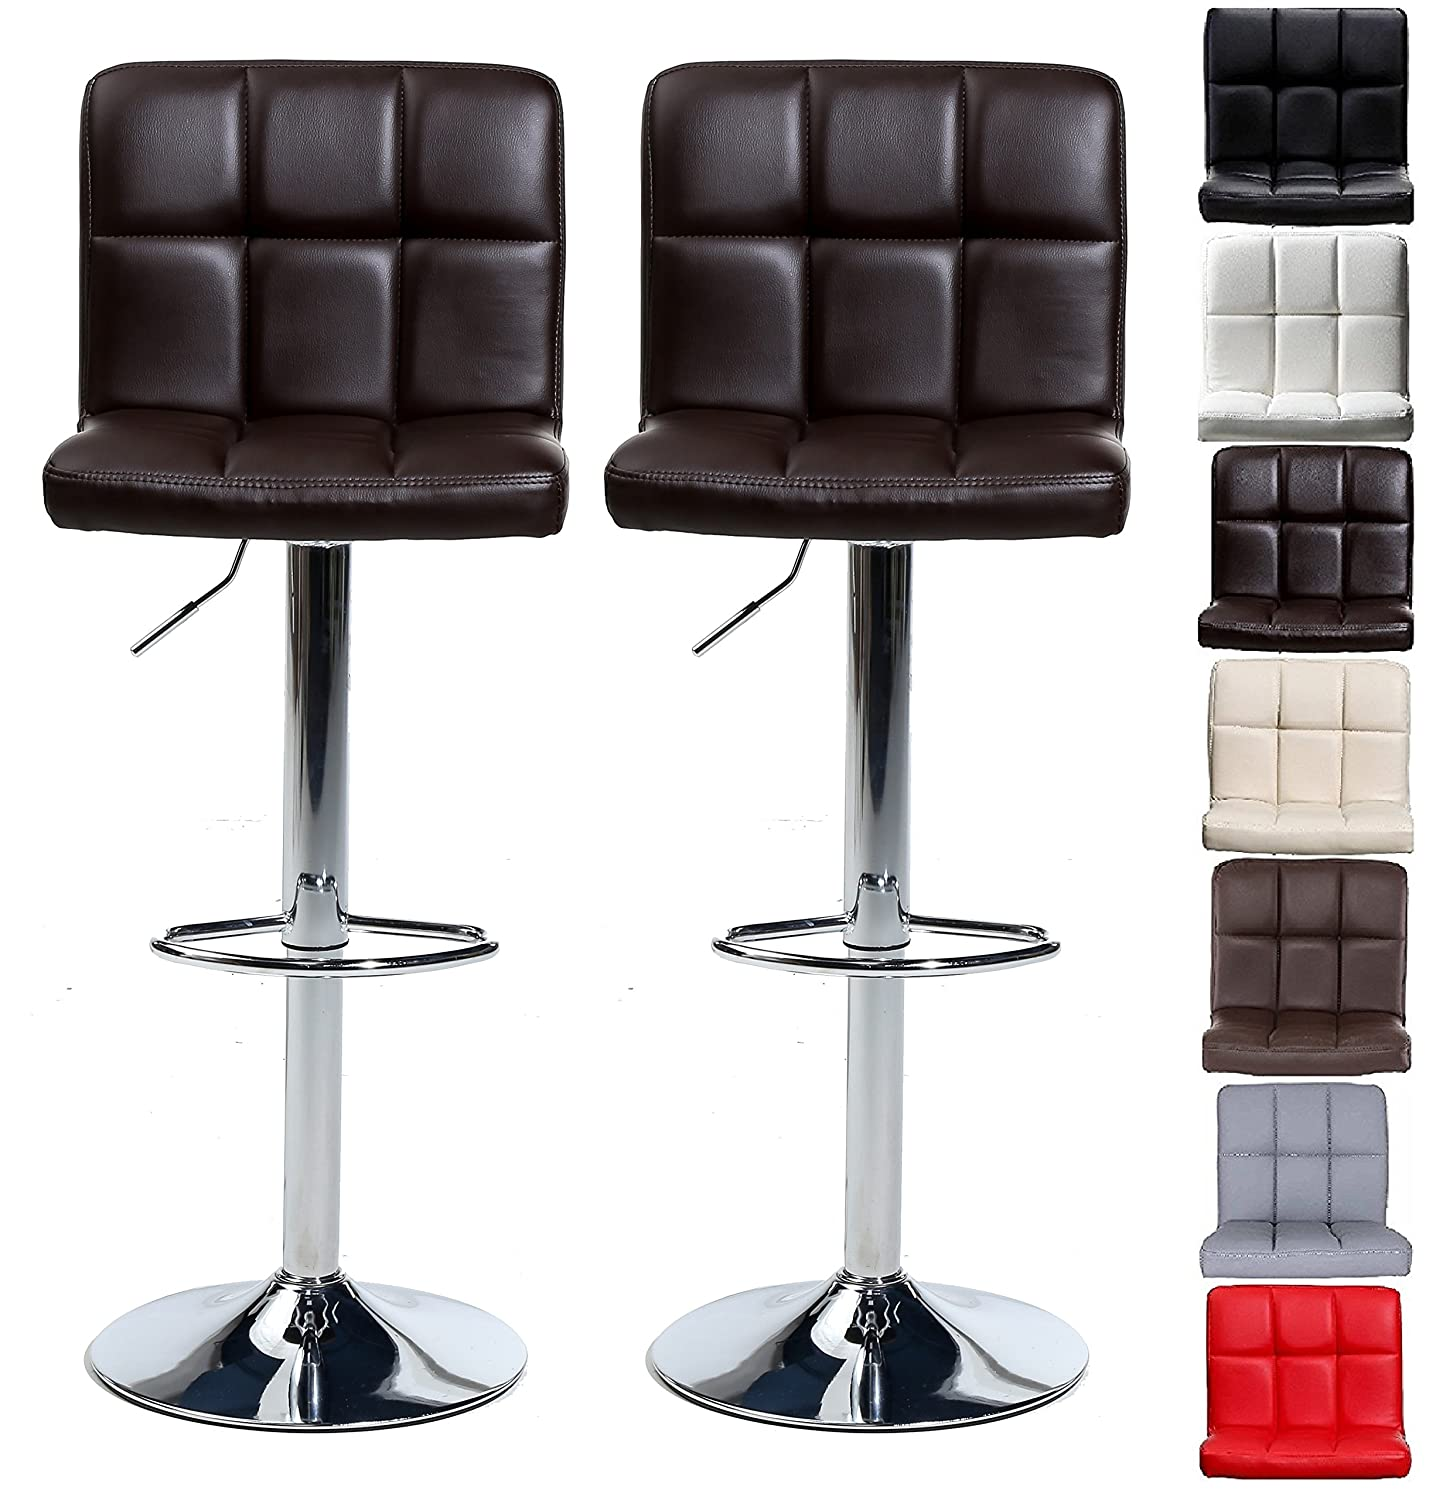 Pair of Cuban Bar Stools Set with Backrest, Leatherette Exterior, Adjustable Swivel Gas Lift, Chrome Footrest and Base for Breakfast Bar, Counter, Kitchen and Home Barstools (Black) Millhouse